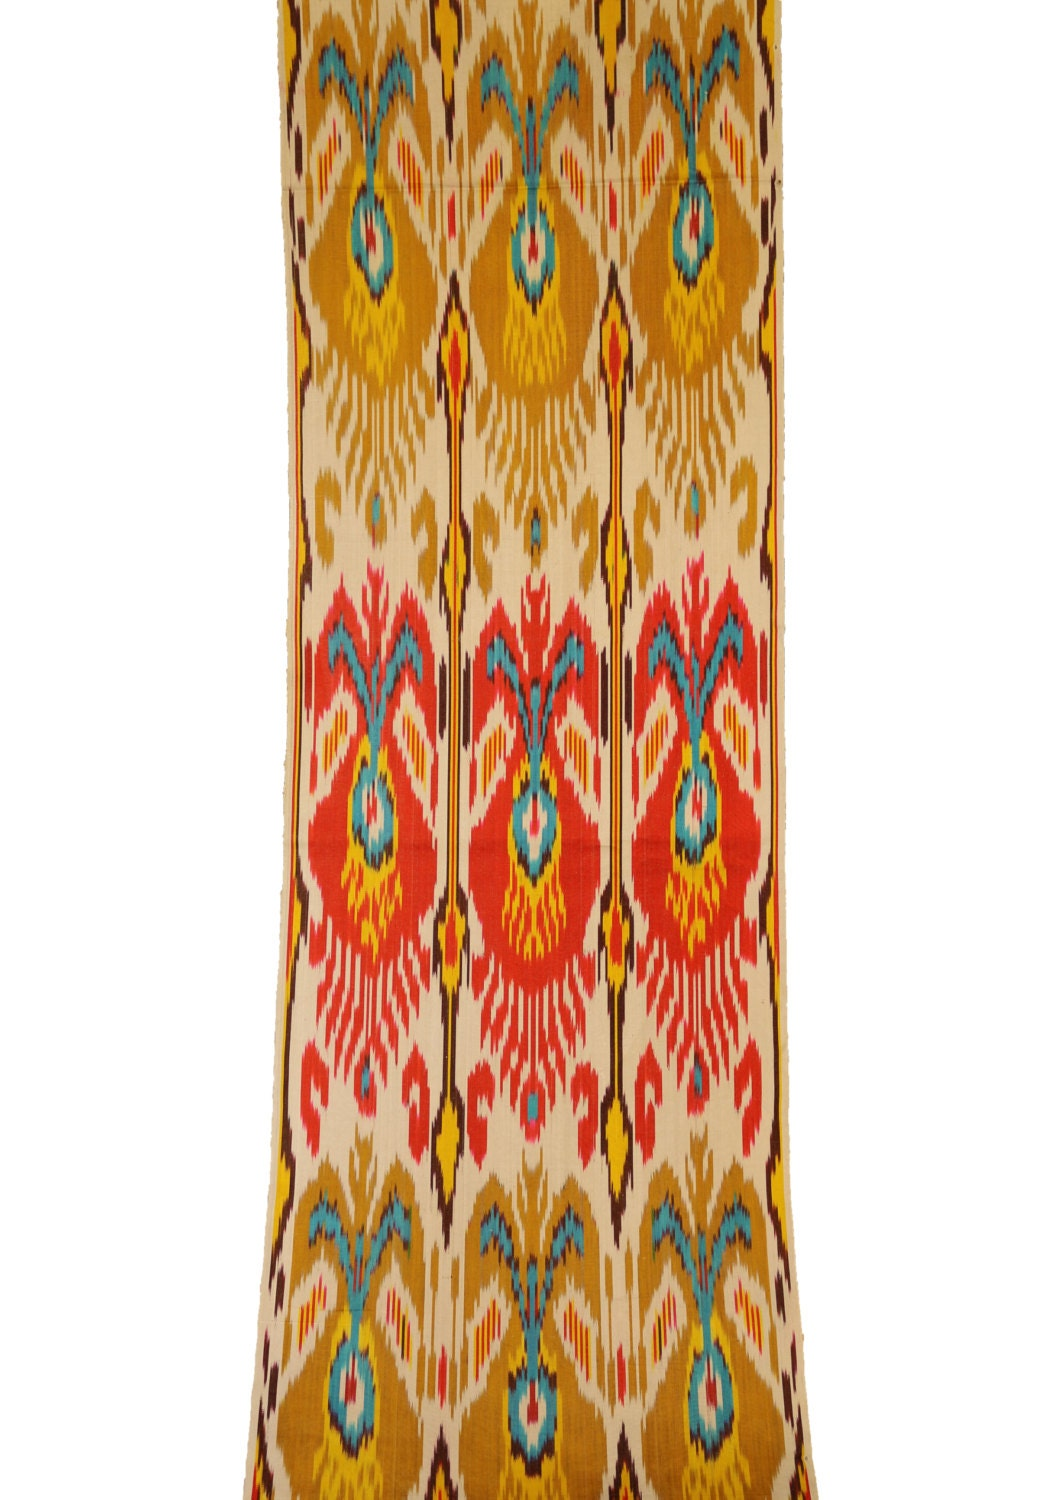 Sale ikat fabric ikat fabric by the yard f a472 by for Cloth for sale by the yard